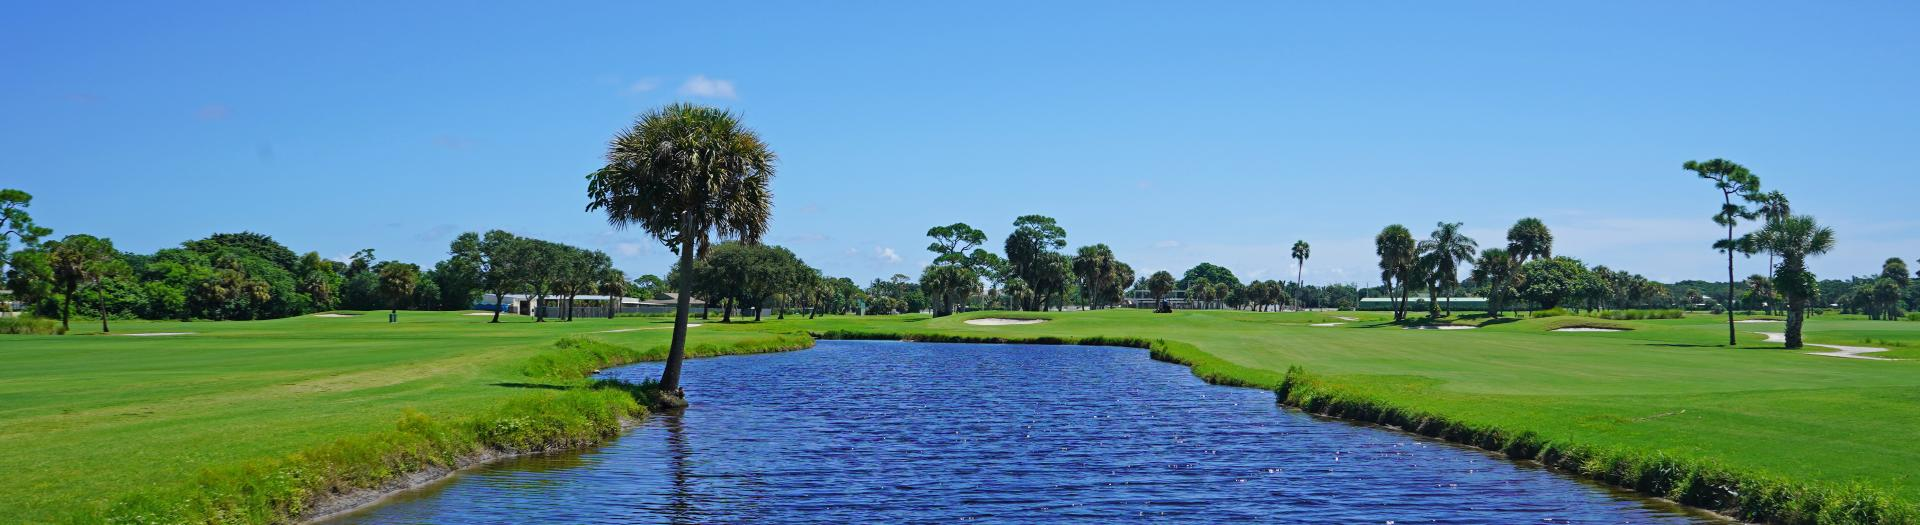 Pond next to Gold #2 on Sailfish Sands Golf Course